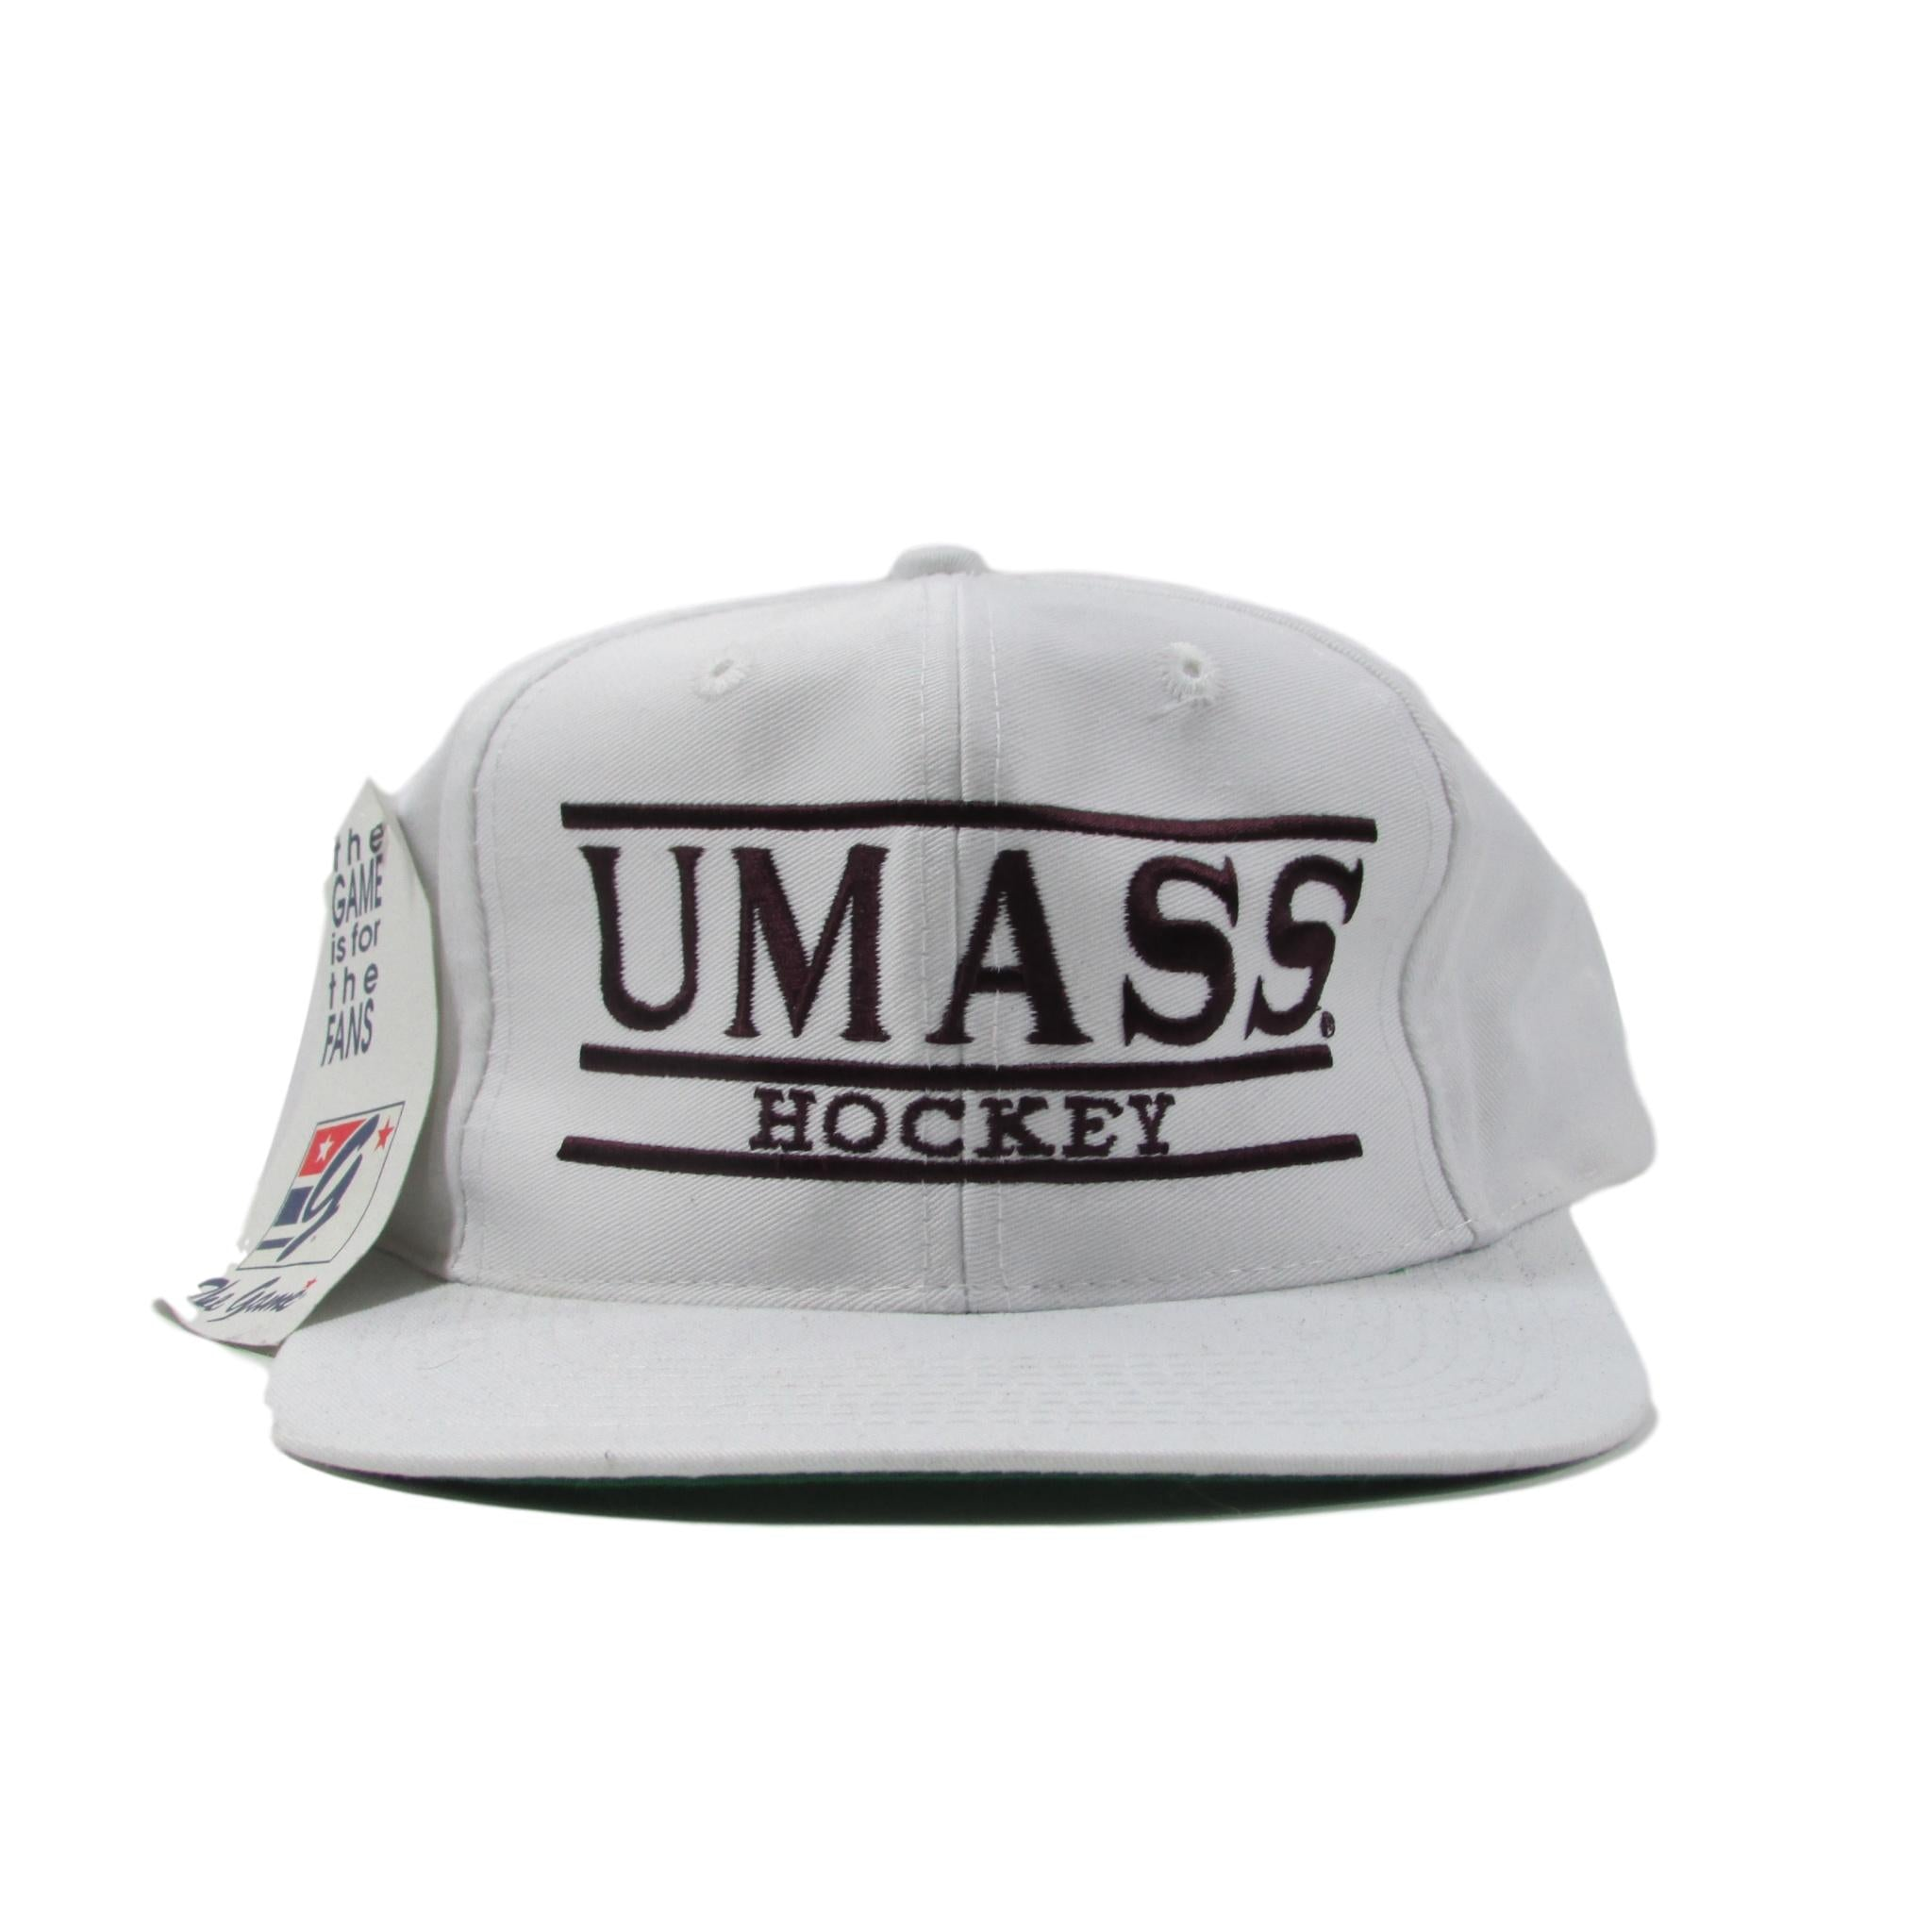 The Game UMASS University of Massachusetts Hockey Deadstock Snapback Hat